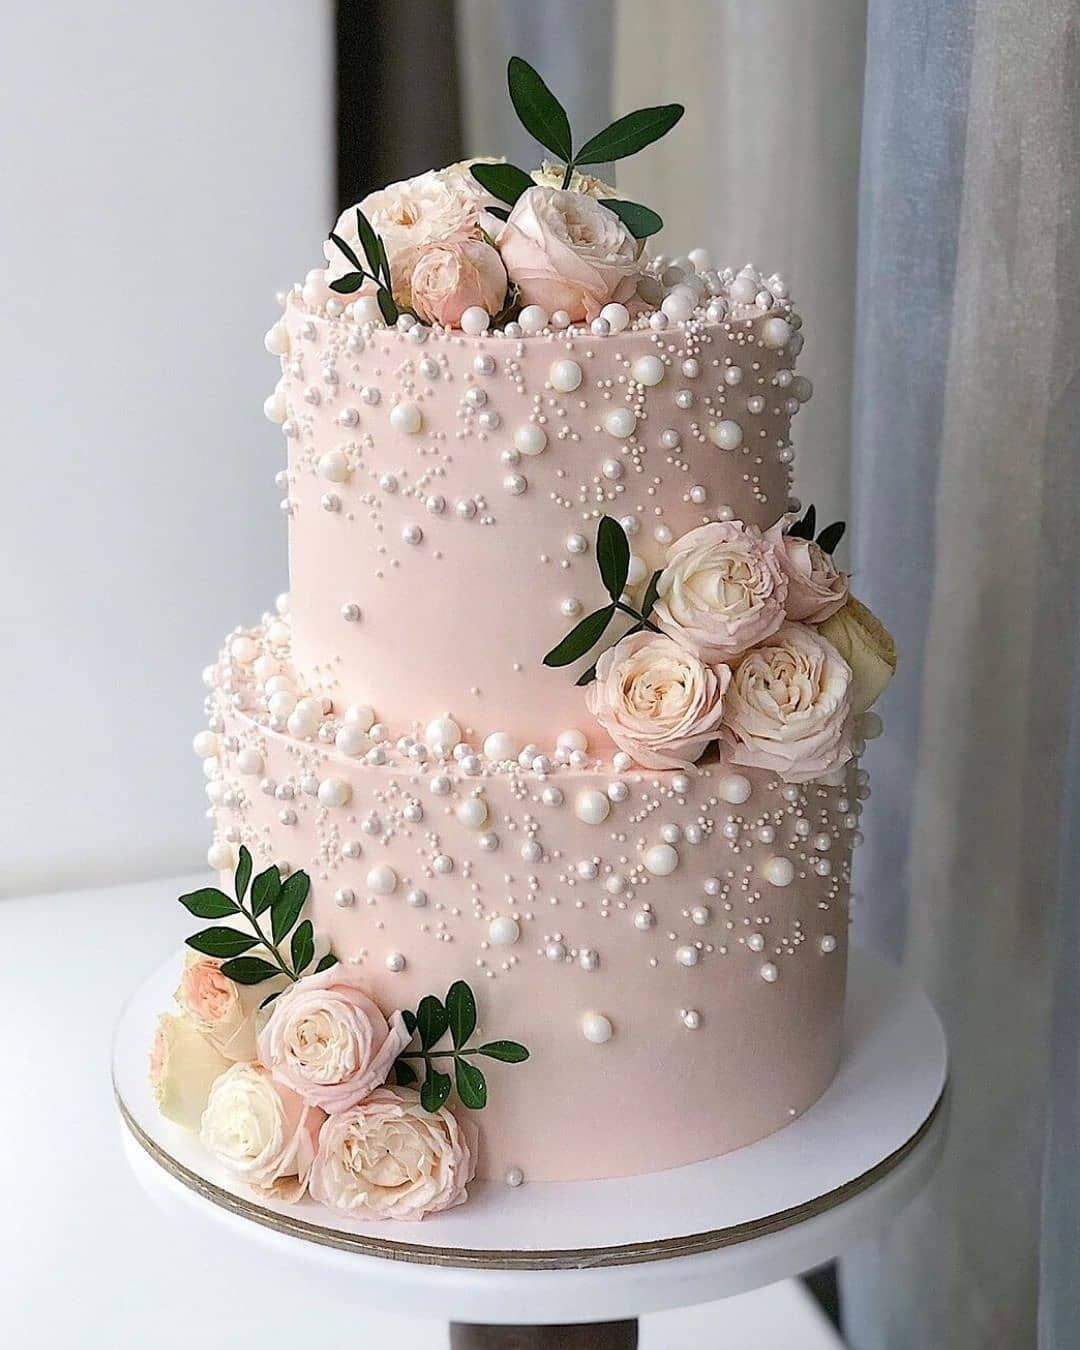 The Wed List On Instagram Here S A Pretty Cake Inspo For Your Wedding Loving The Pearls An Buttercream Wedding Cake Simple Wedding Cake Floral Wedding Cakes